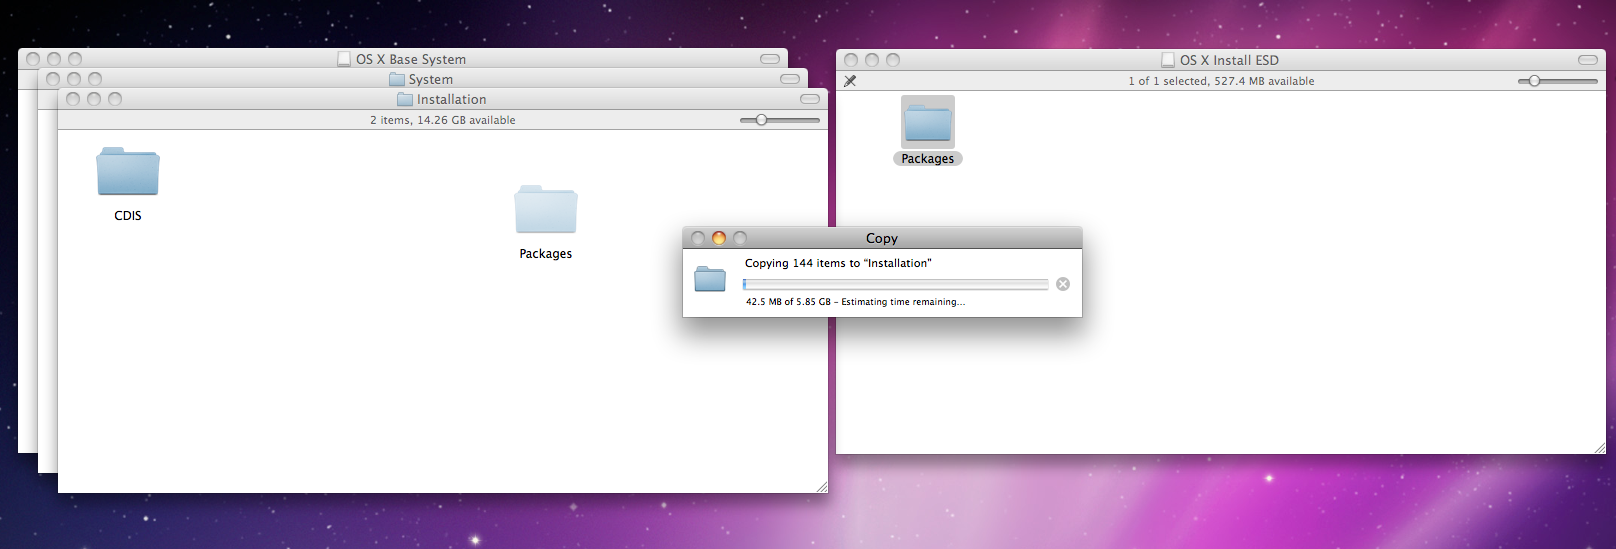 Make a bootable El Capitan drive from Snow Leopard - Apple